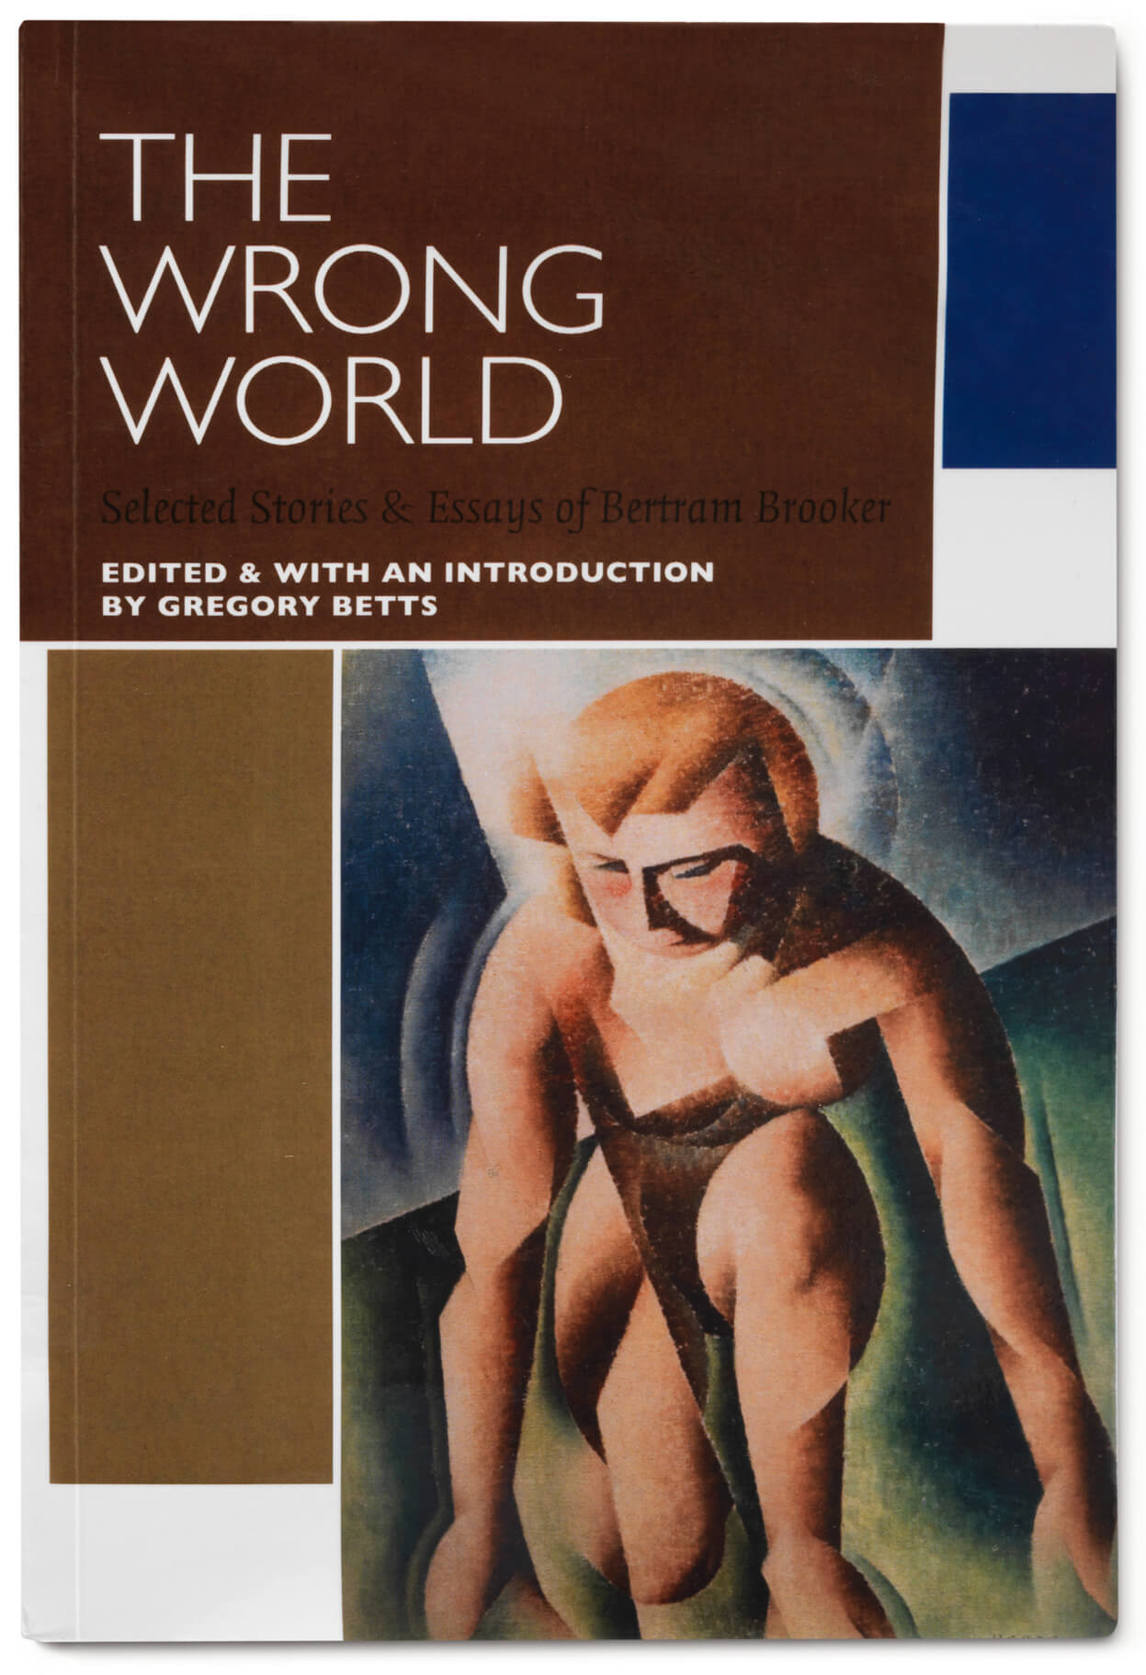 Page couverture de The Wrong World: Selected Stories and Essays by Bertram Brooker, Gregory Betts, éd.